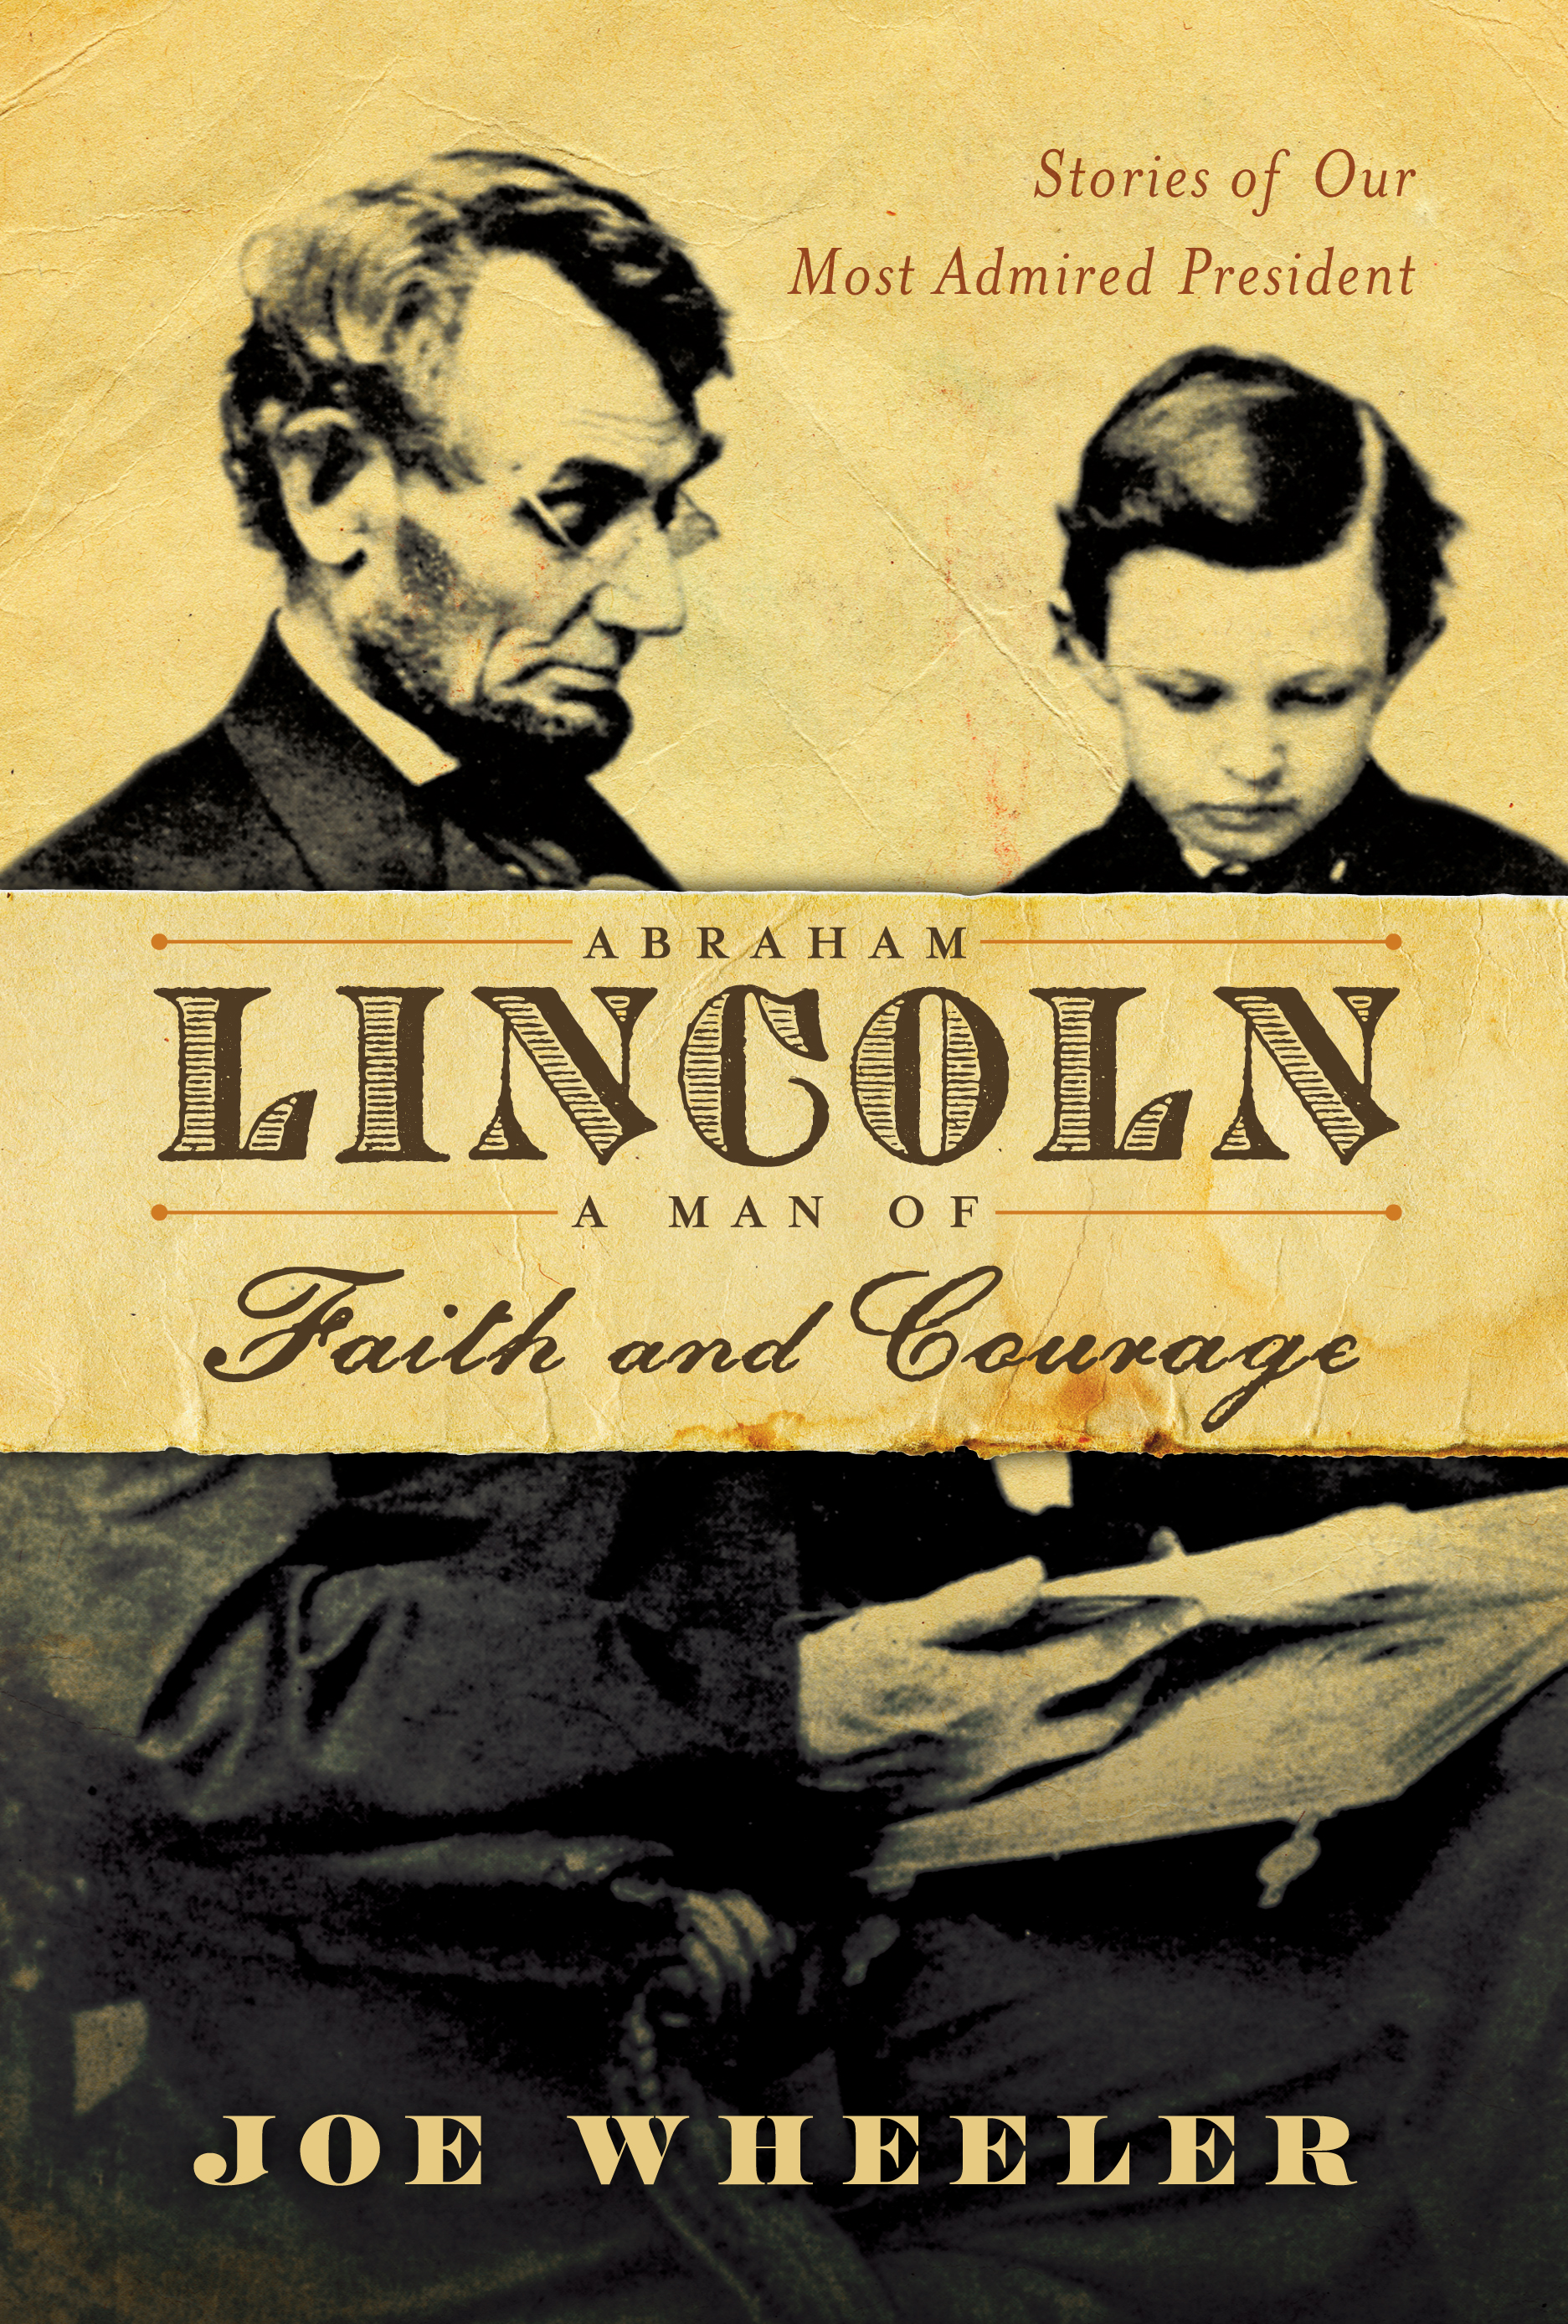 Abraham Lincoln, a Man of Faith and Courage | Book by Joe Wheeler ...